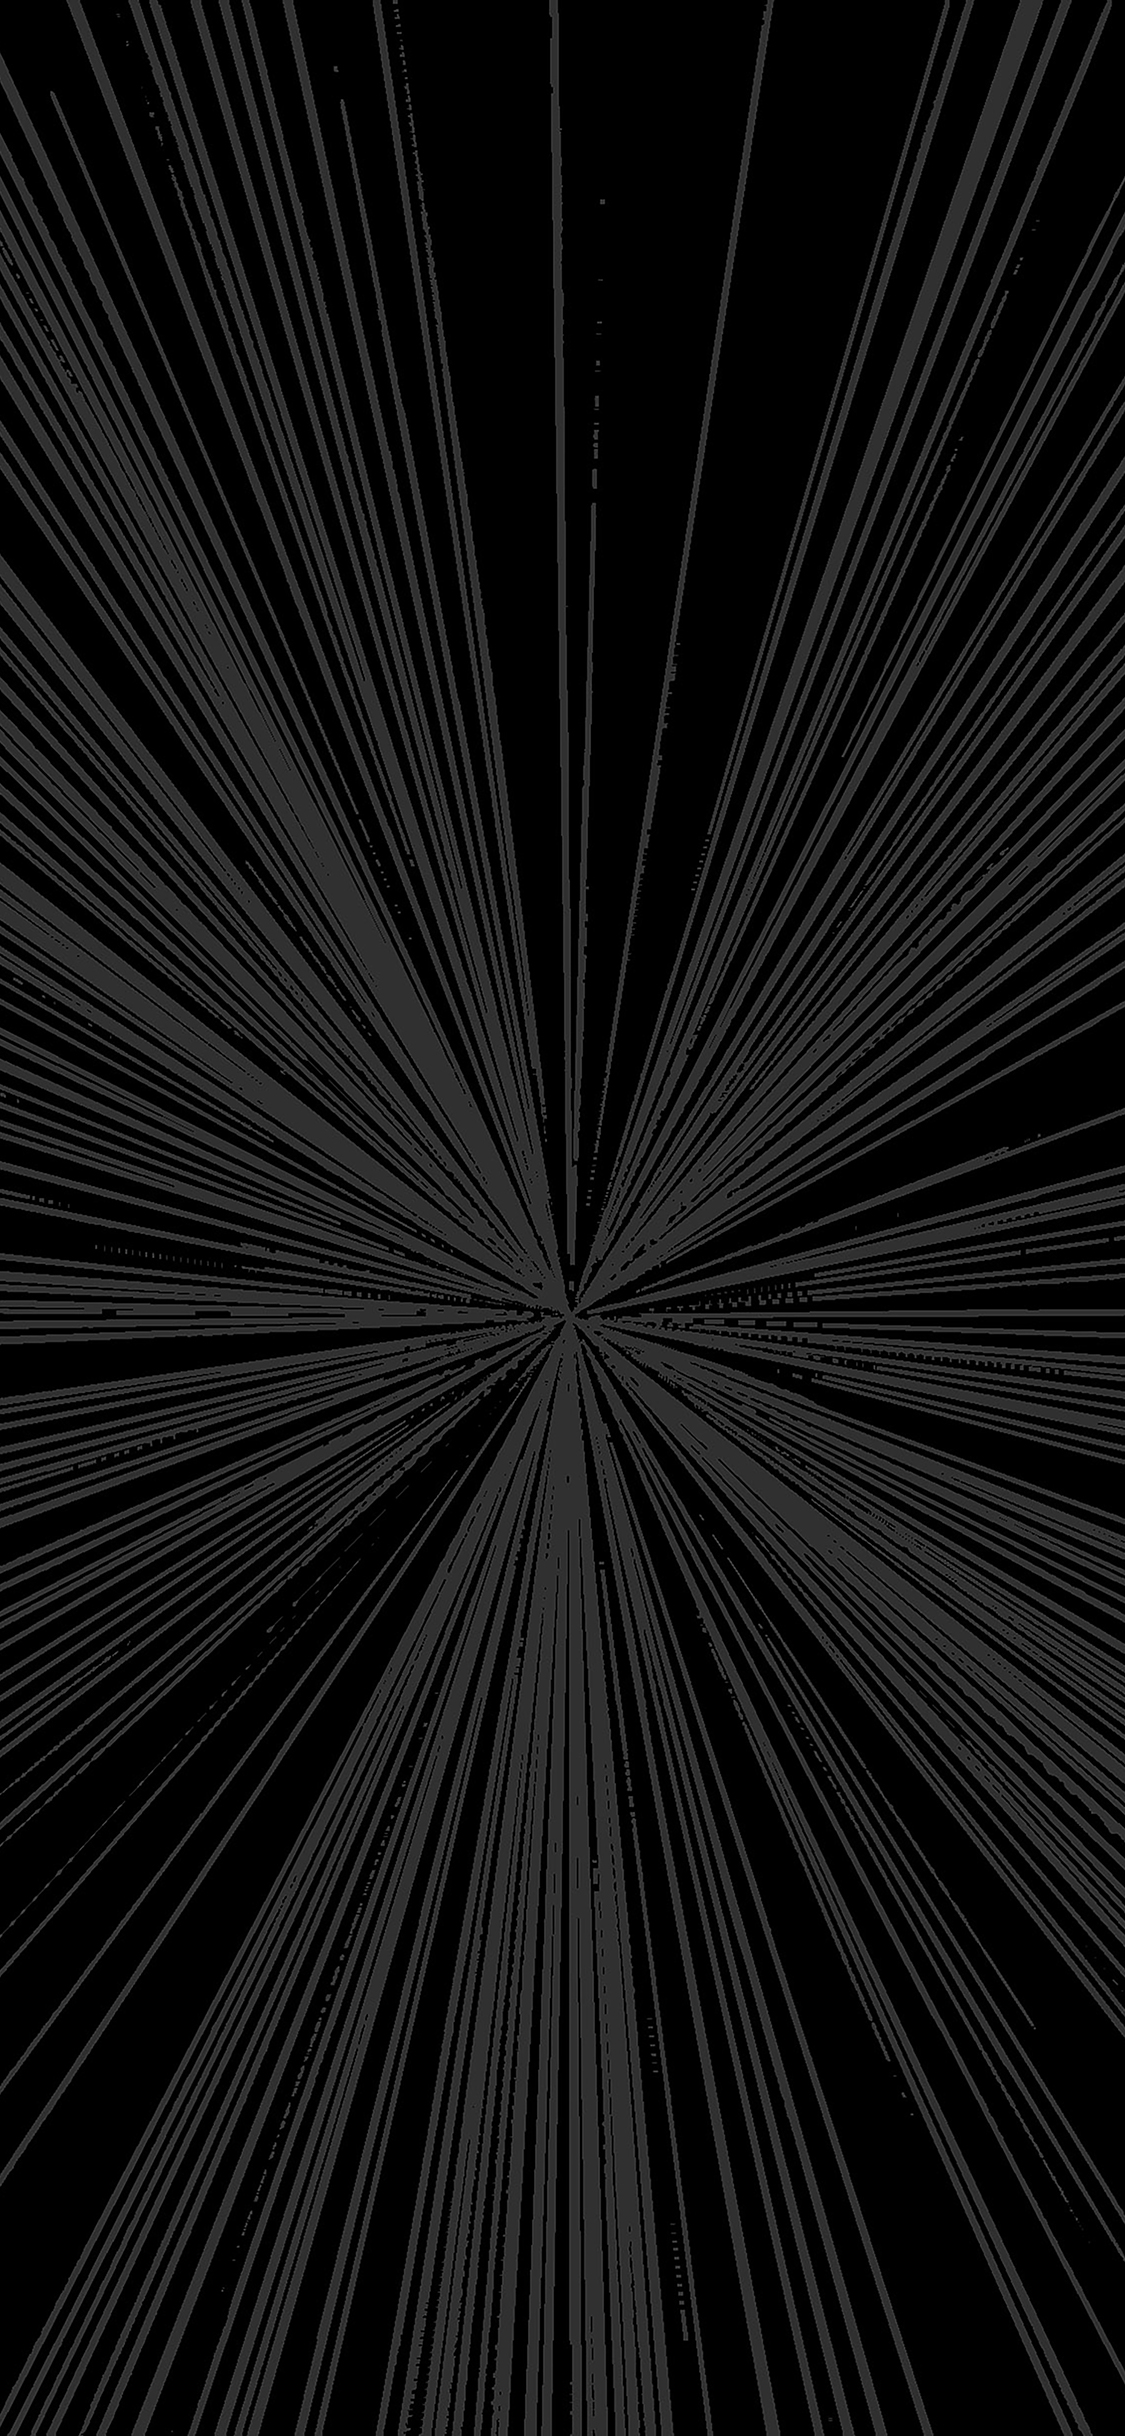 iPhoneXpapers.com-Apple-iPhone-wallpaper-vb00-wallpaper-action-lines-pattern-black